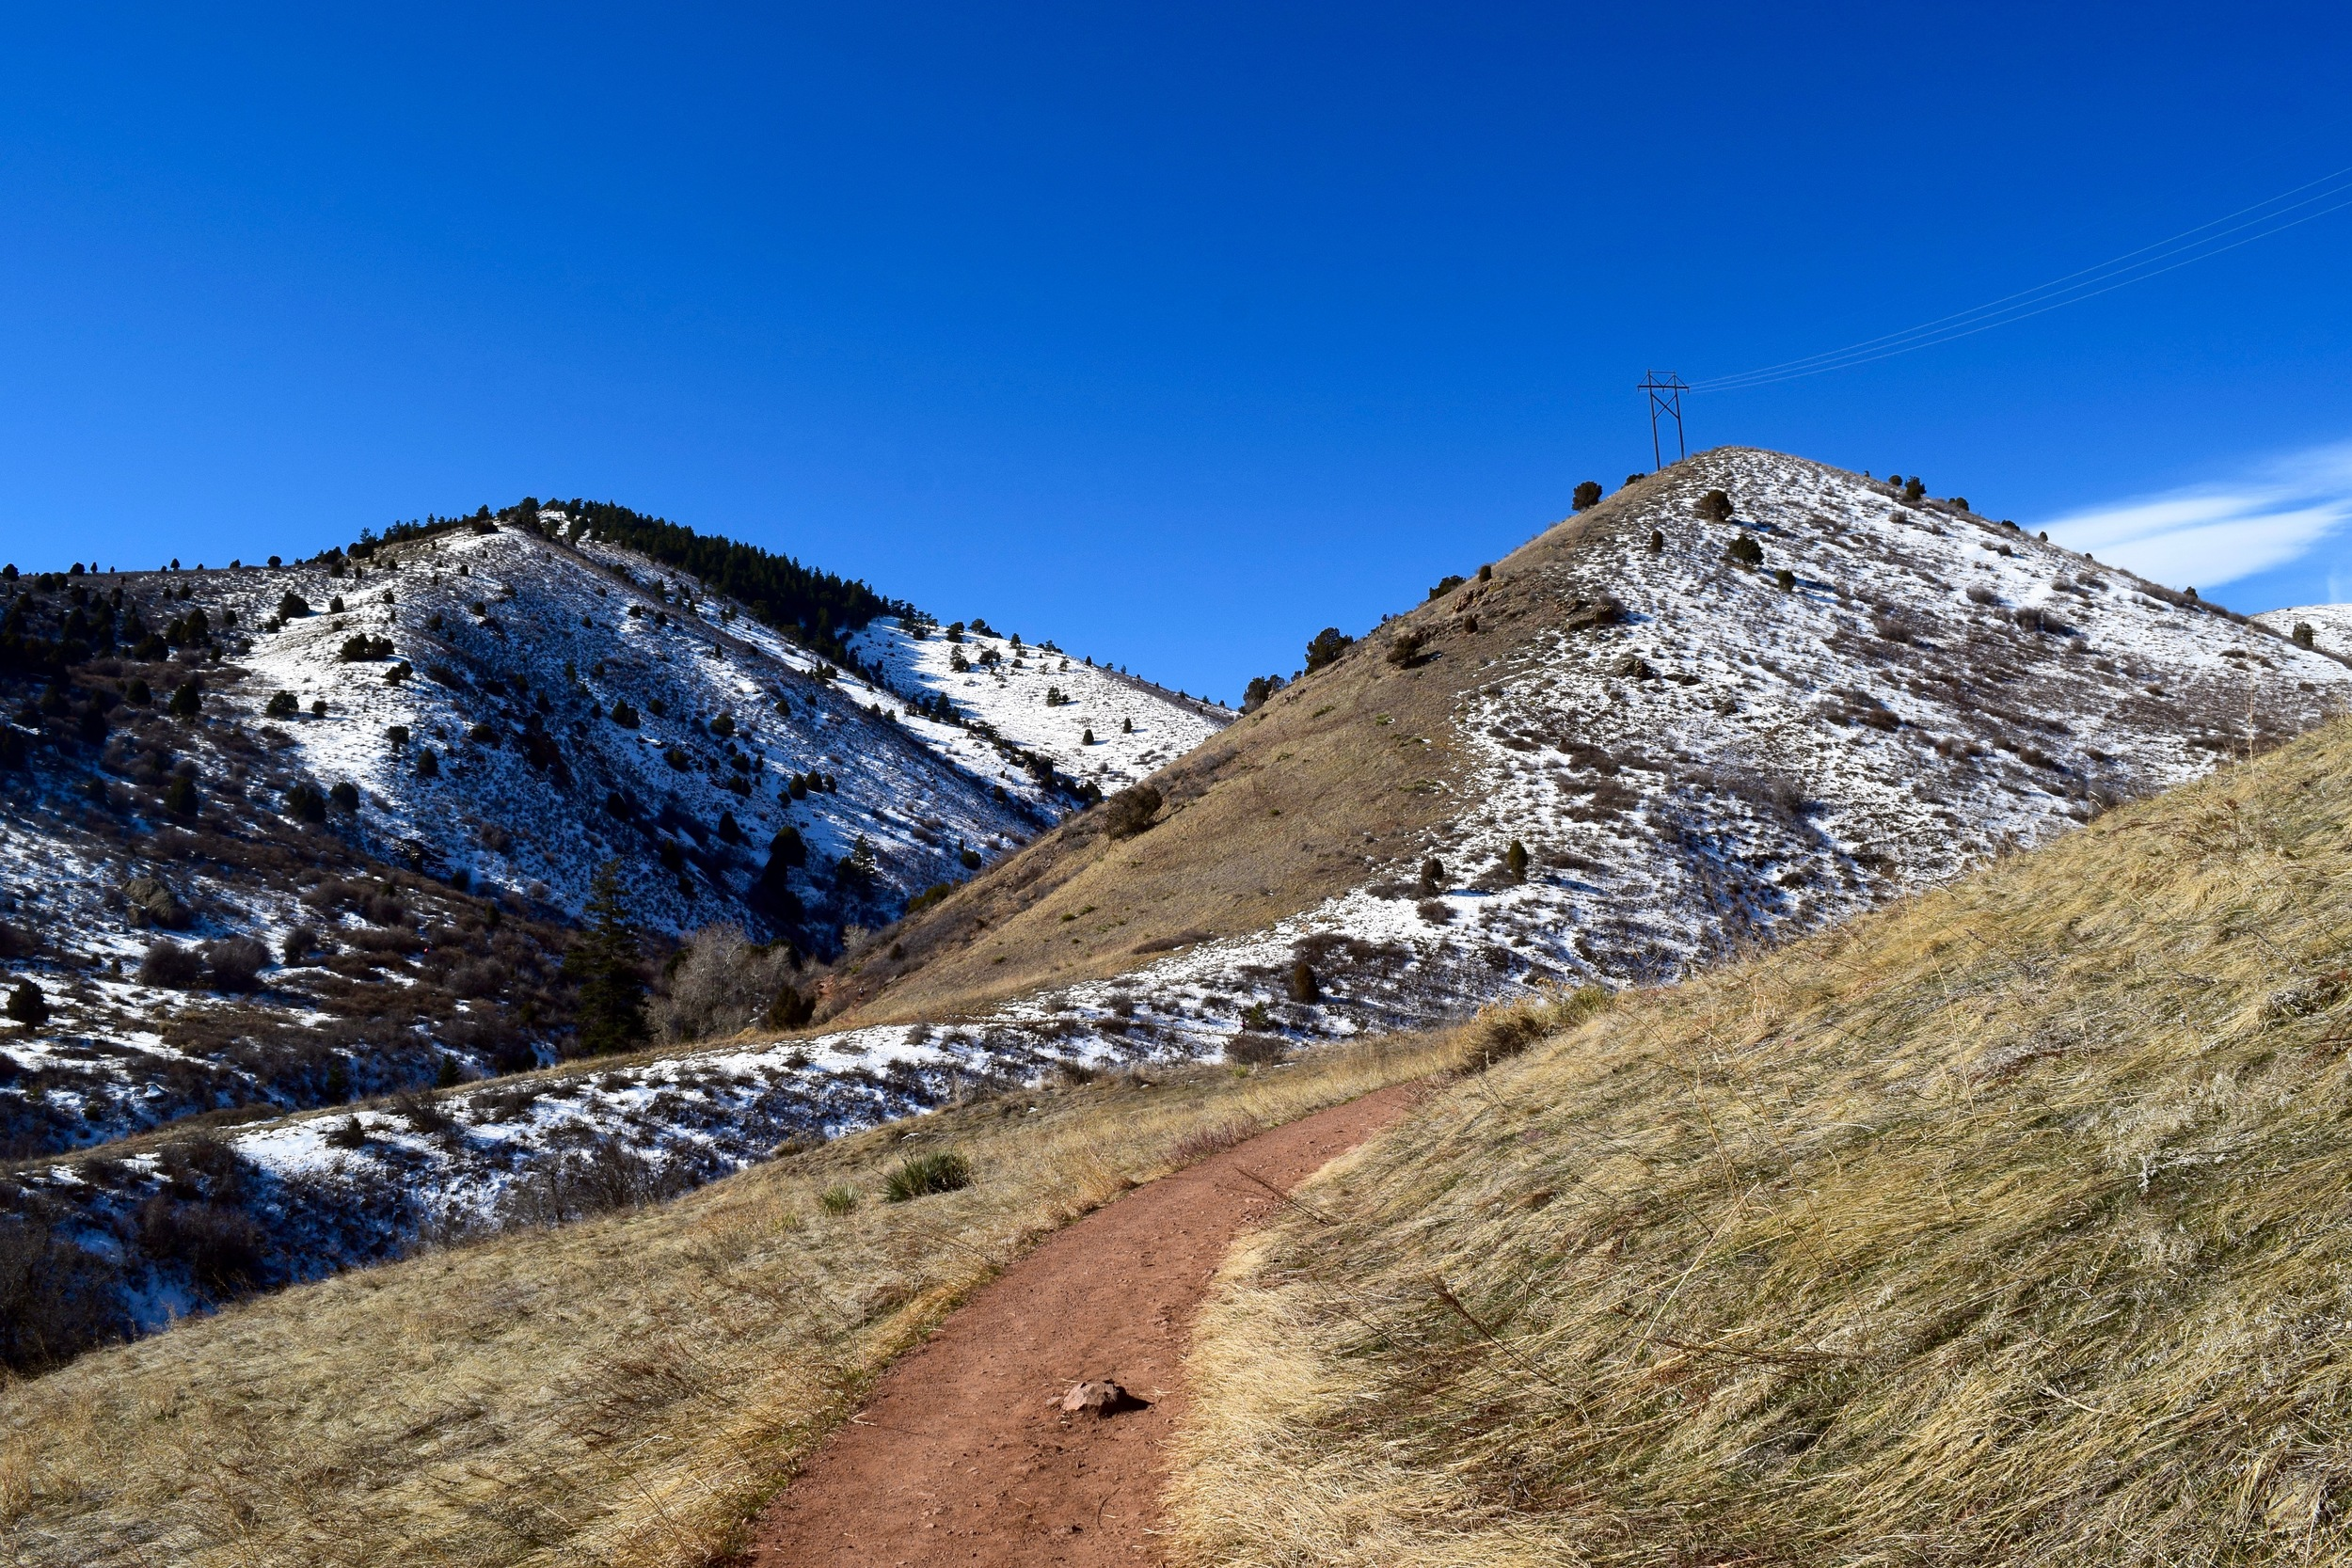 The north sides of all the mountains were covered in snow making walking a challenge